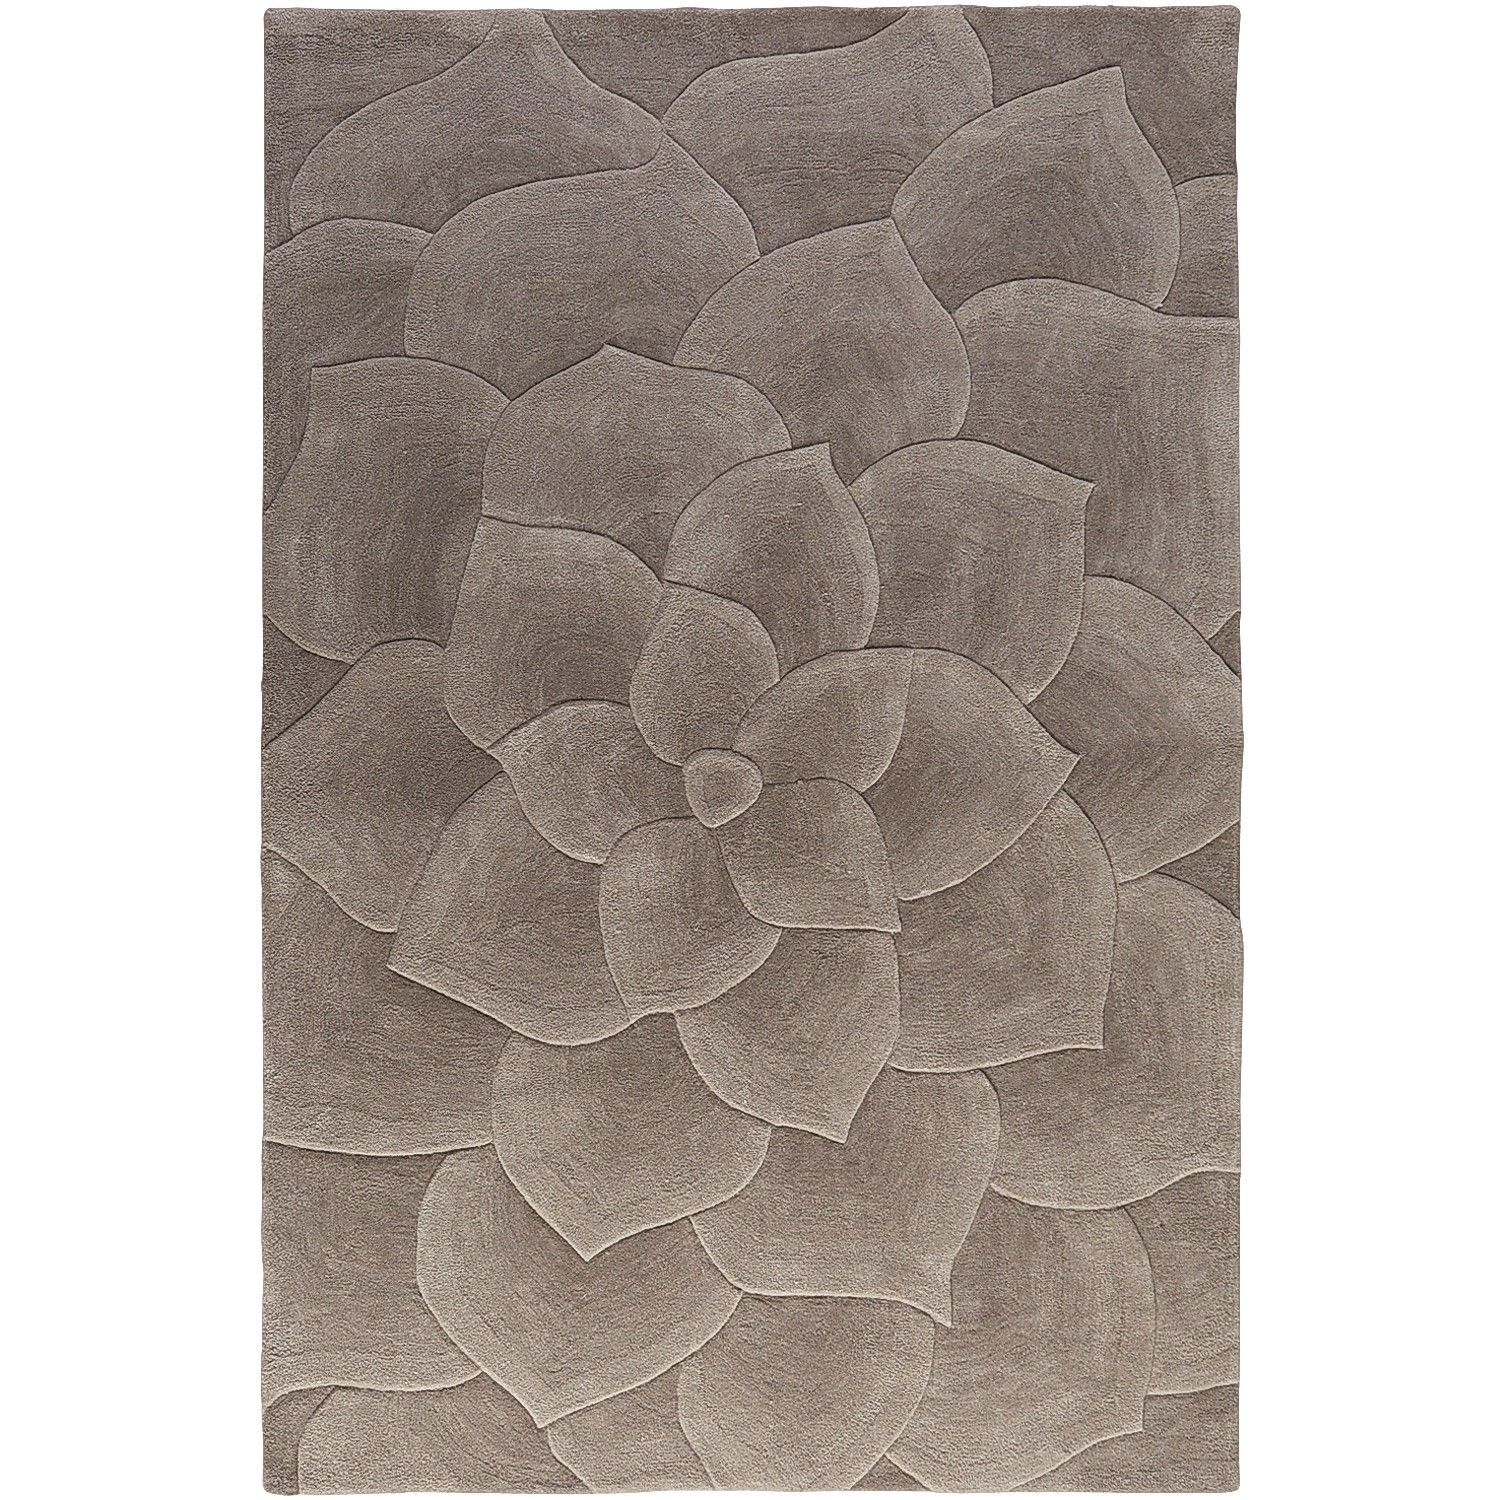 Rose Tufted Gray 2x3 Rug